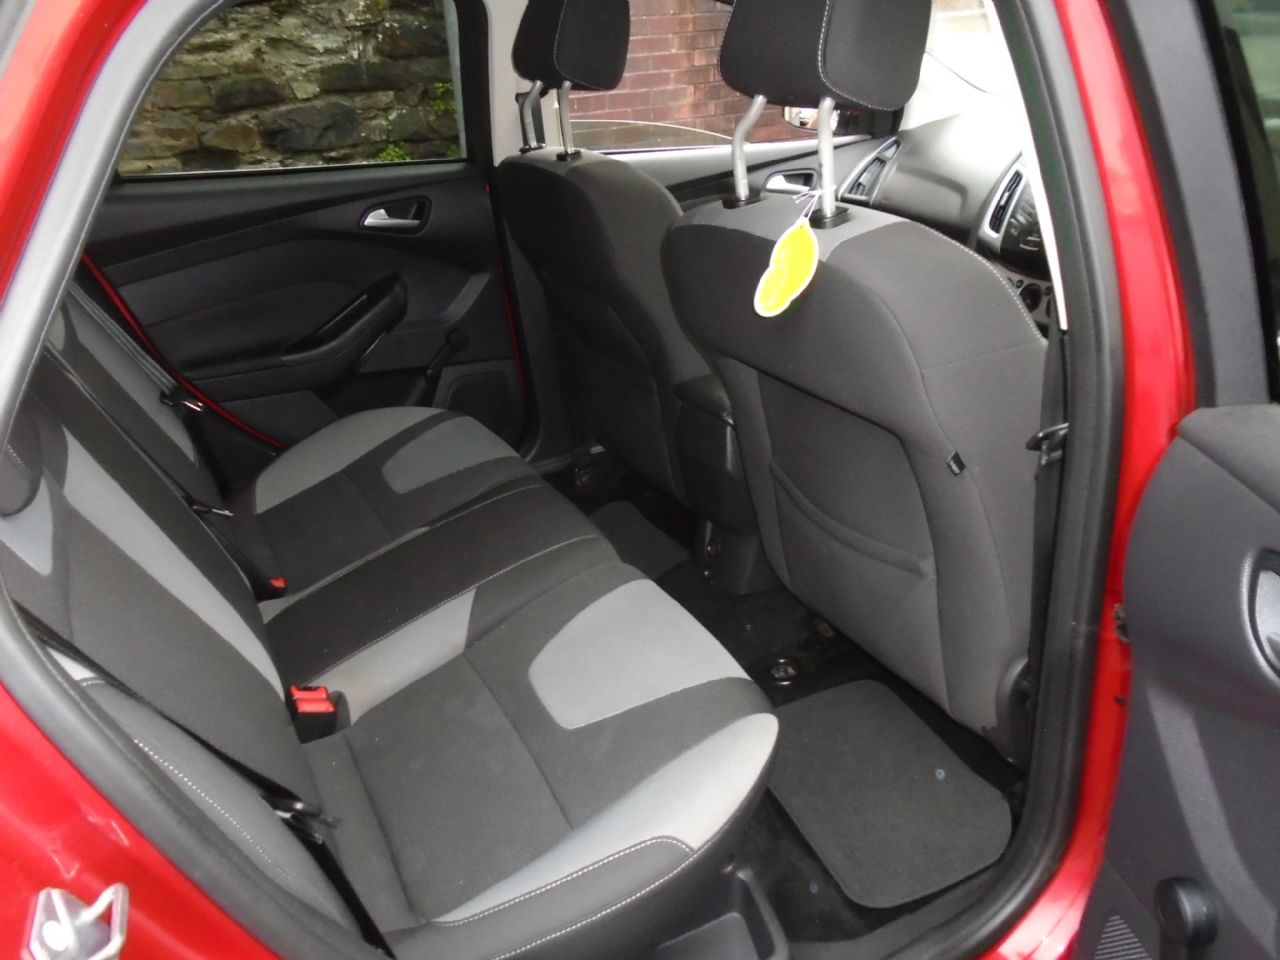 FORD Focus Zetec 1.6 Ti-VCT 125 PS - Picture 7